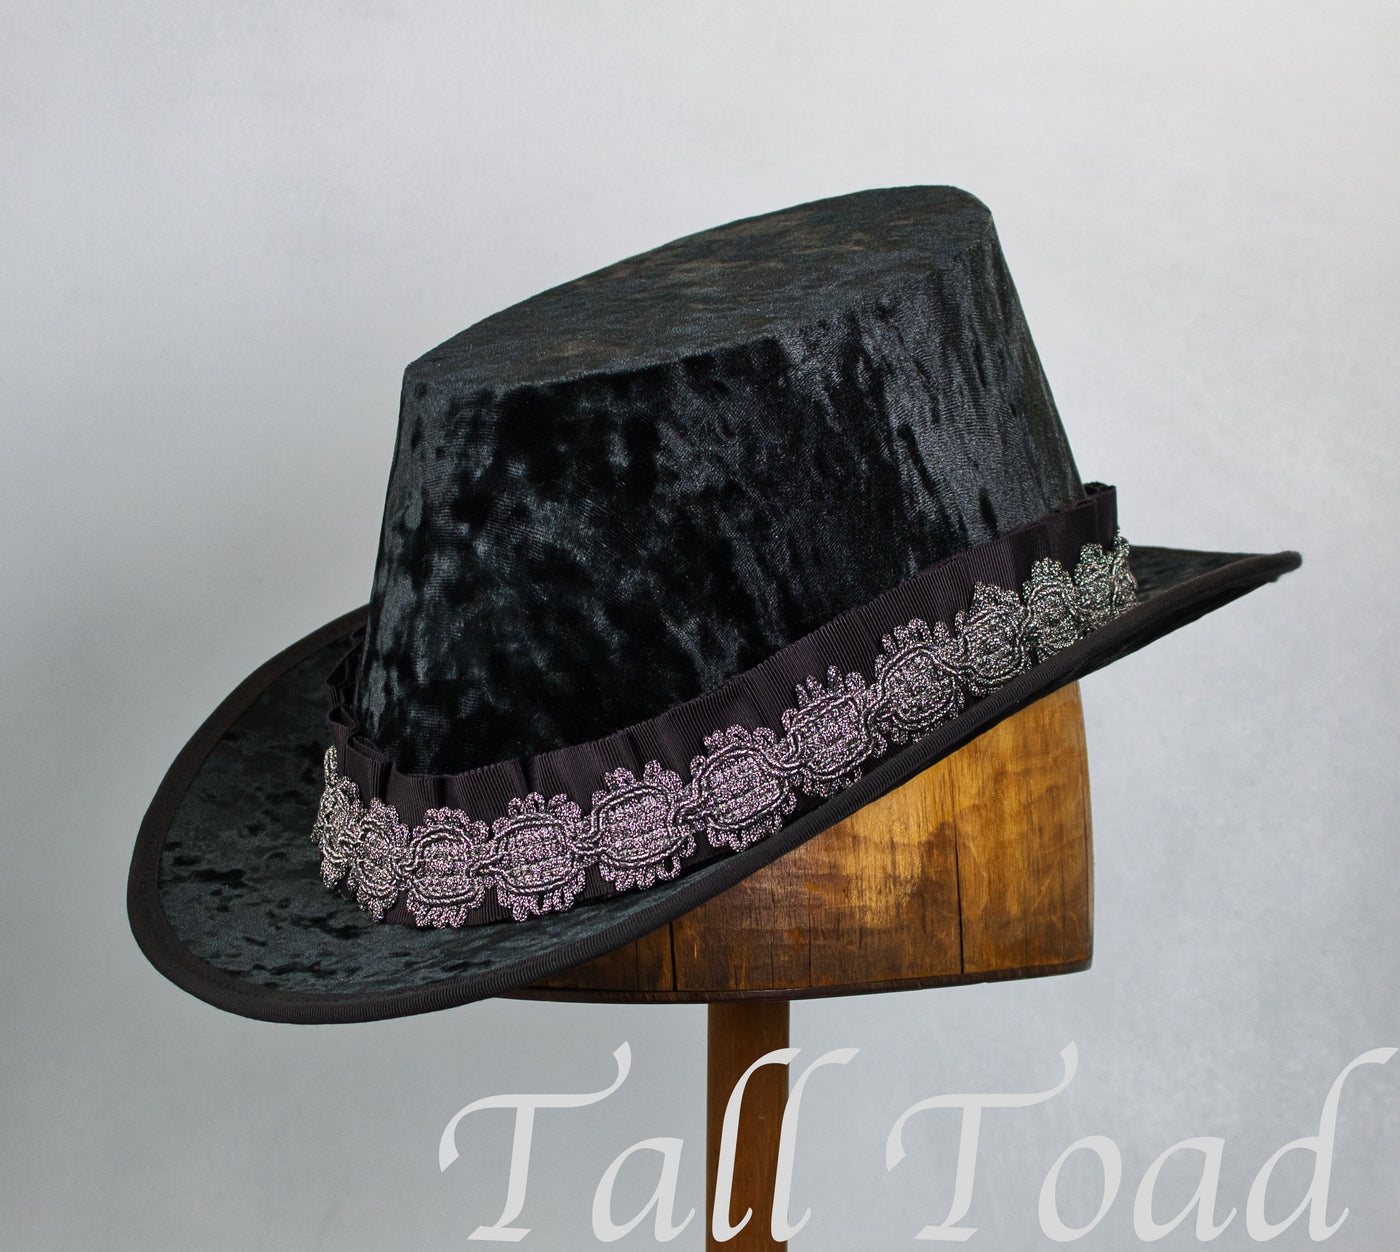 Crushed Velvet Tall Hat - Black Silver Medallion - Tall Toad